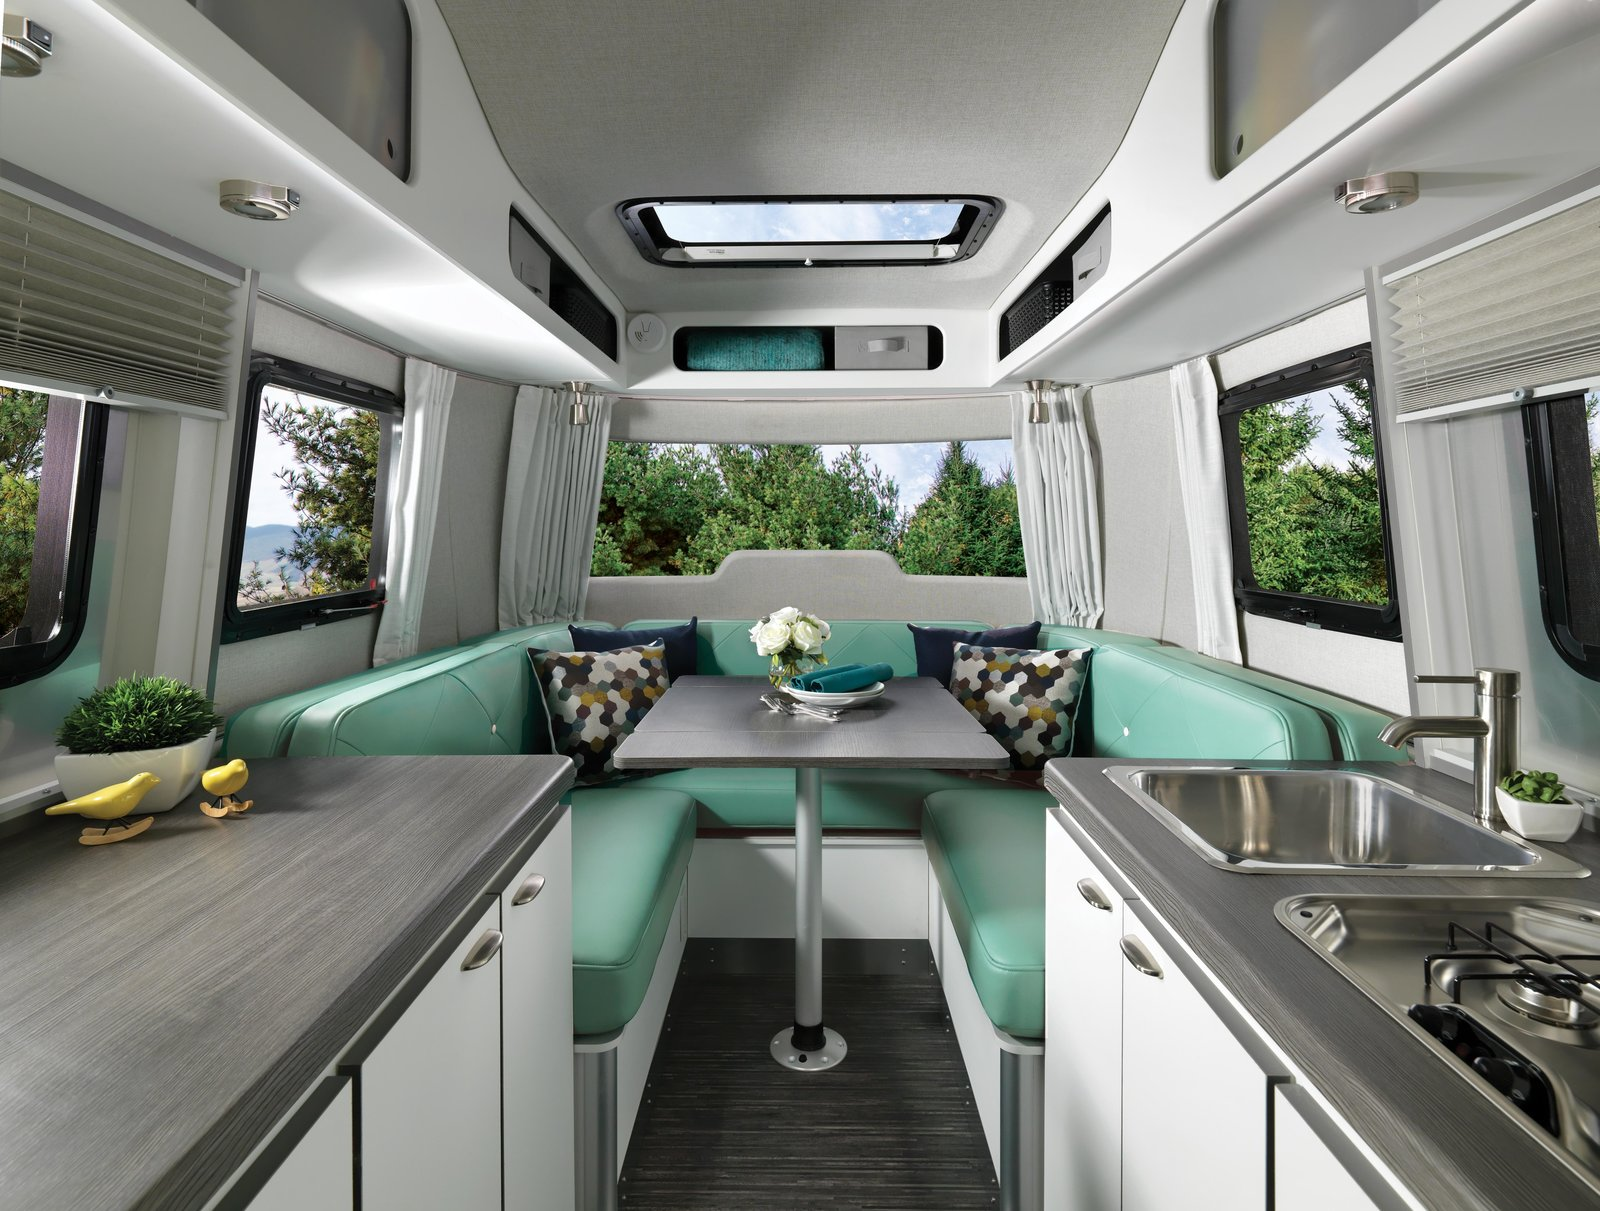 Airstream S First Fiberglass Travel Trailer Is Now